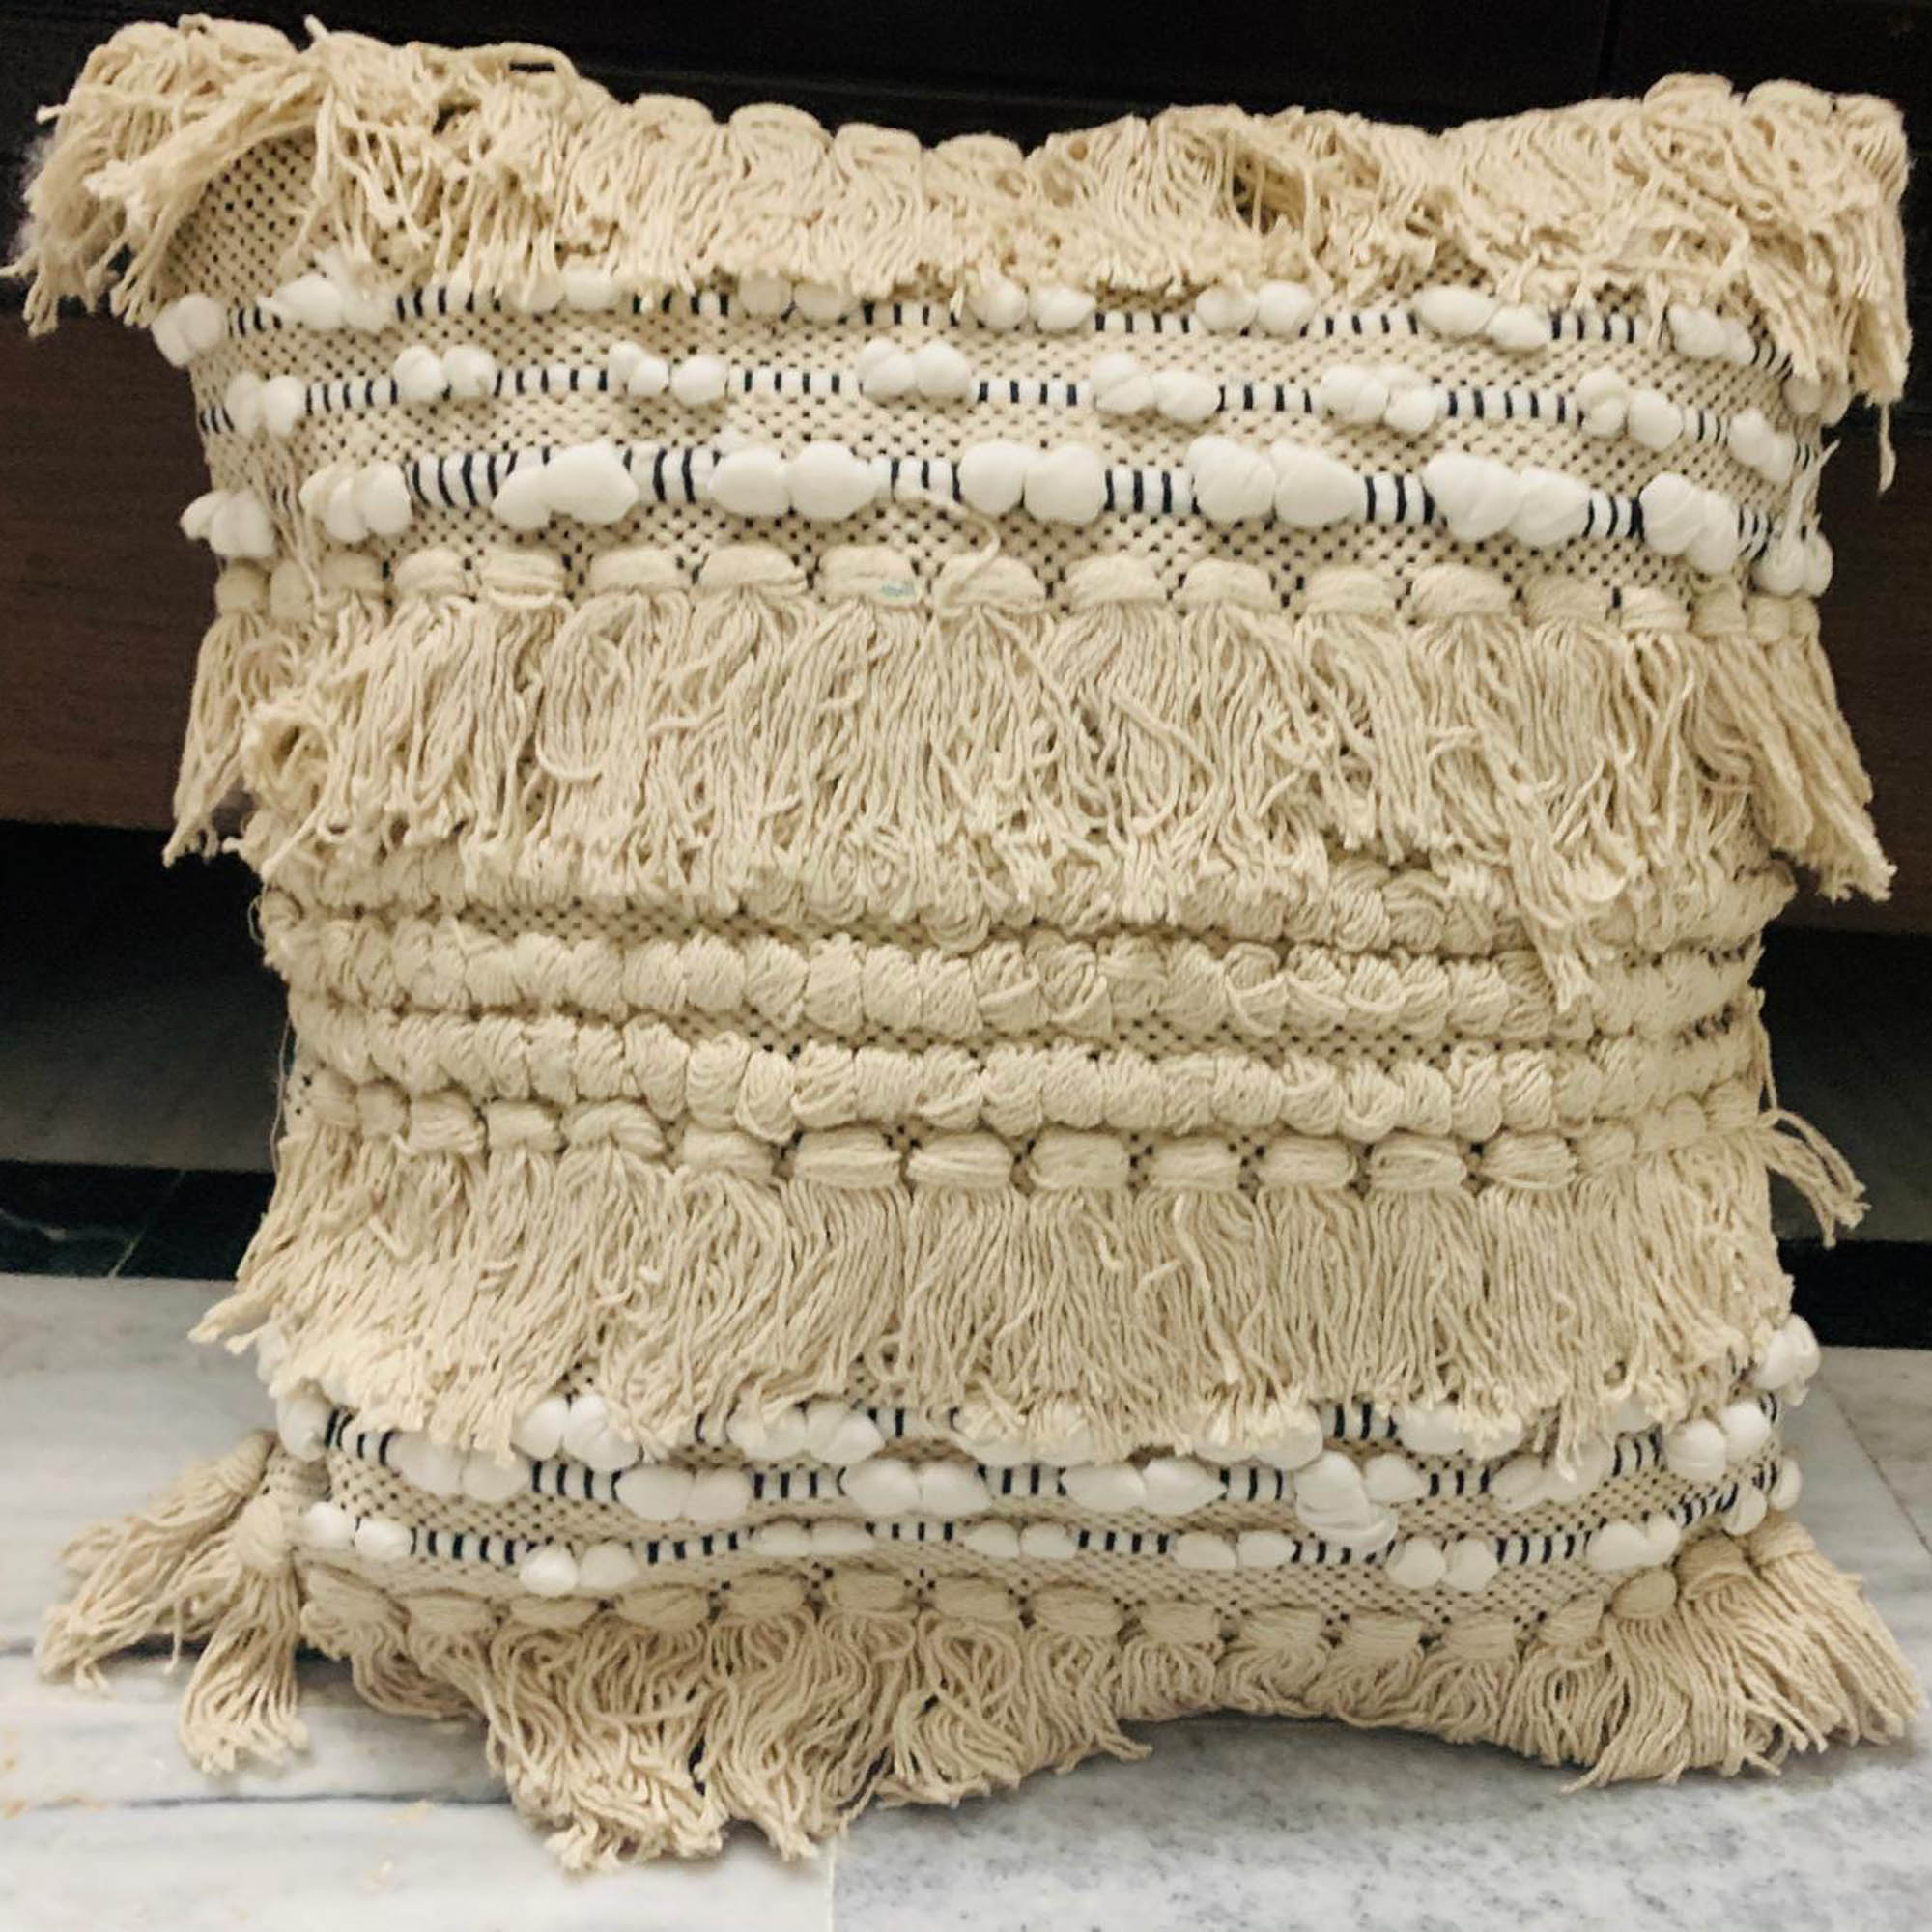 Hand-woven Cotton Thread Cushion Cover